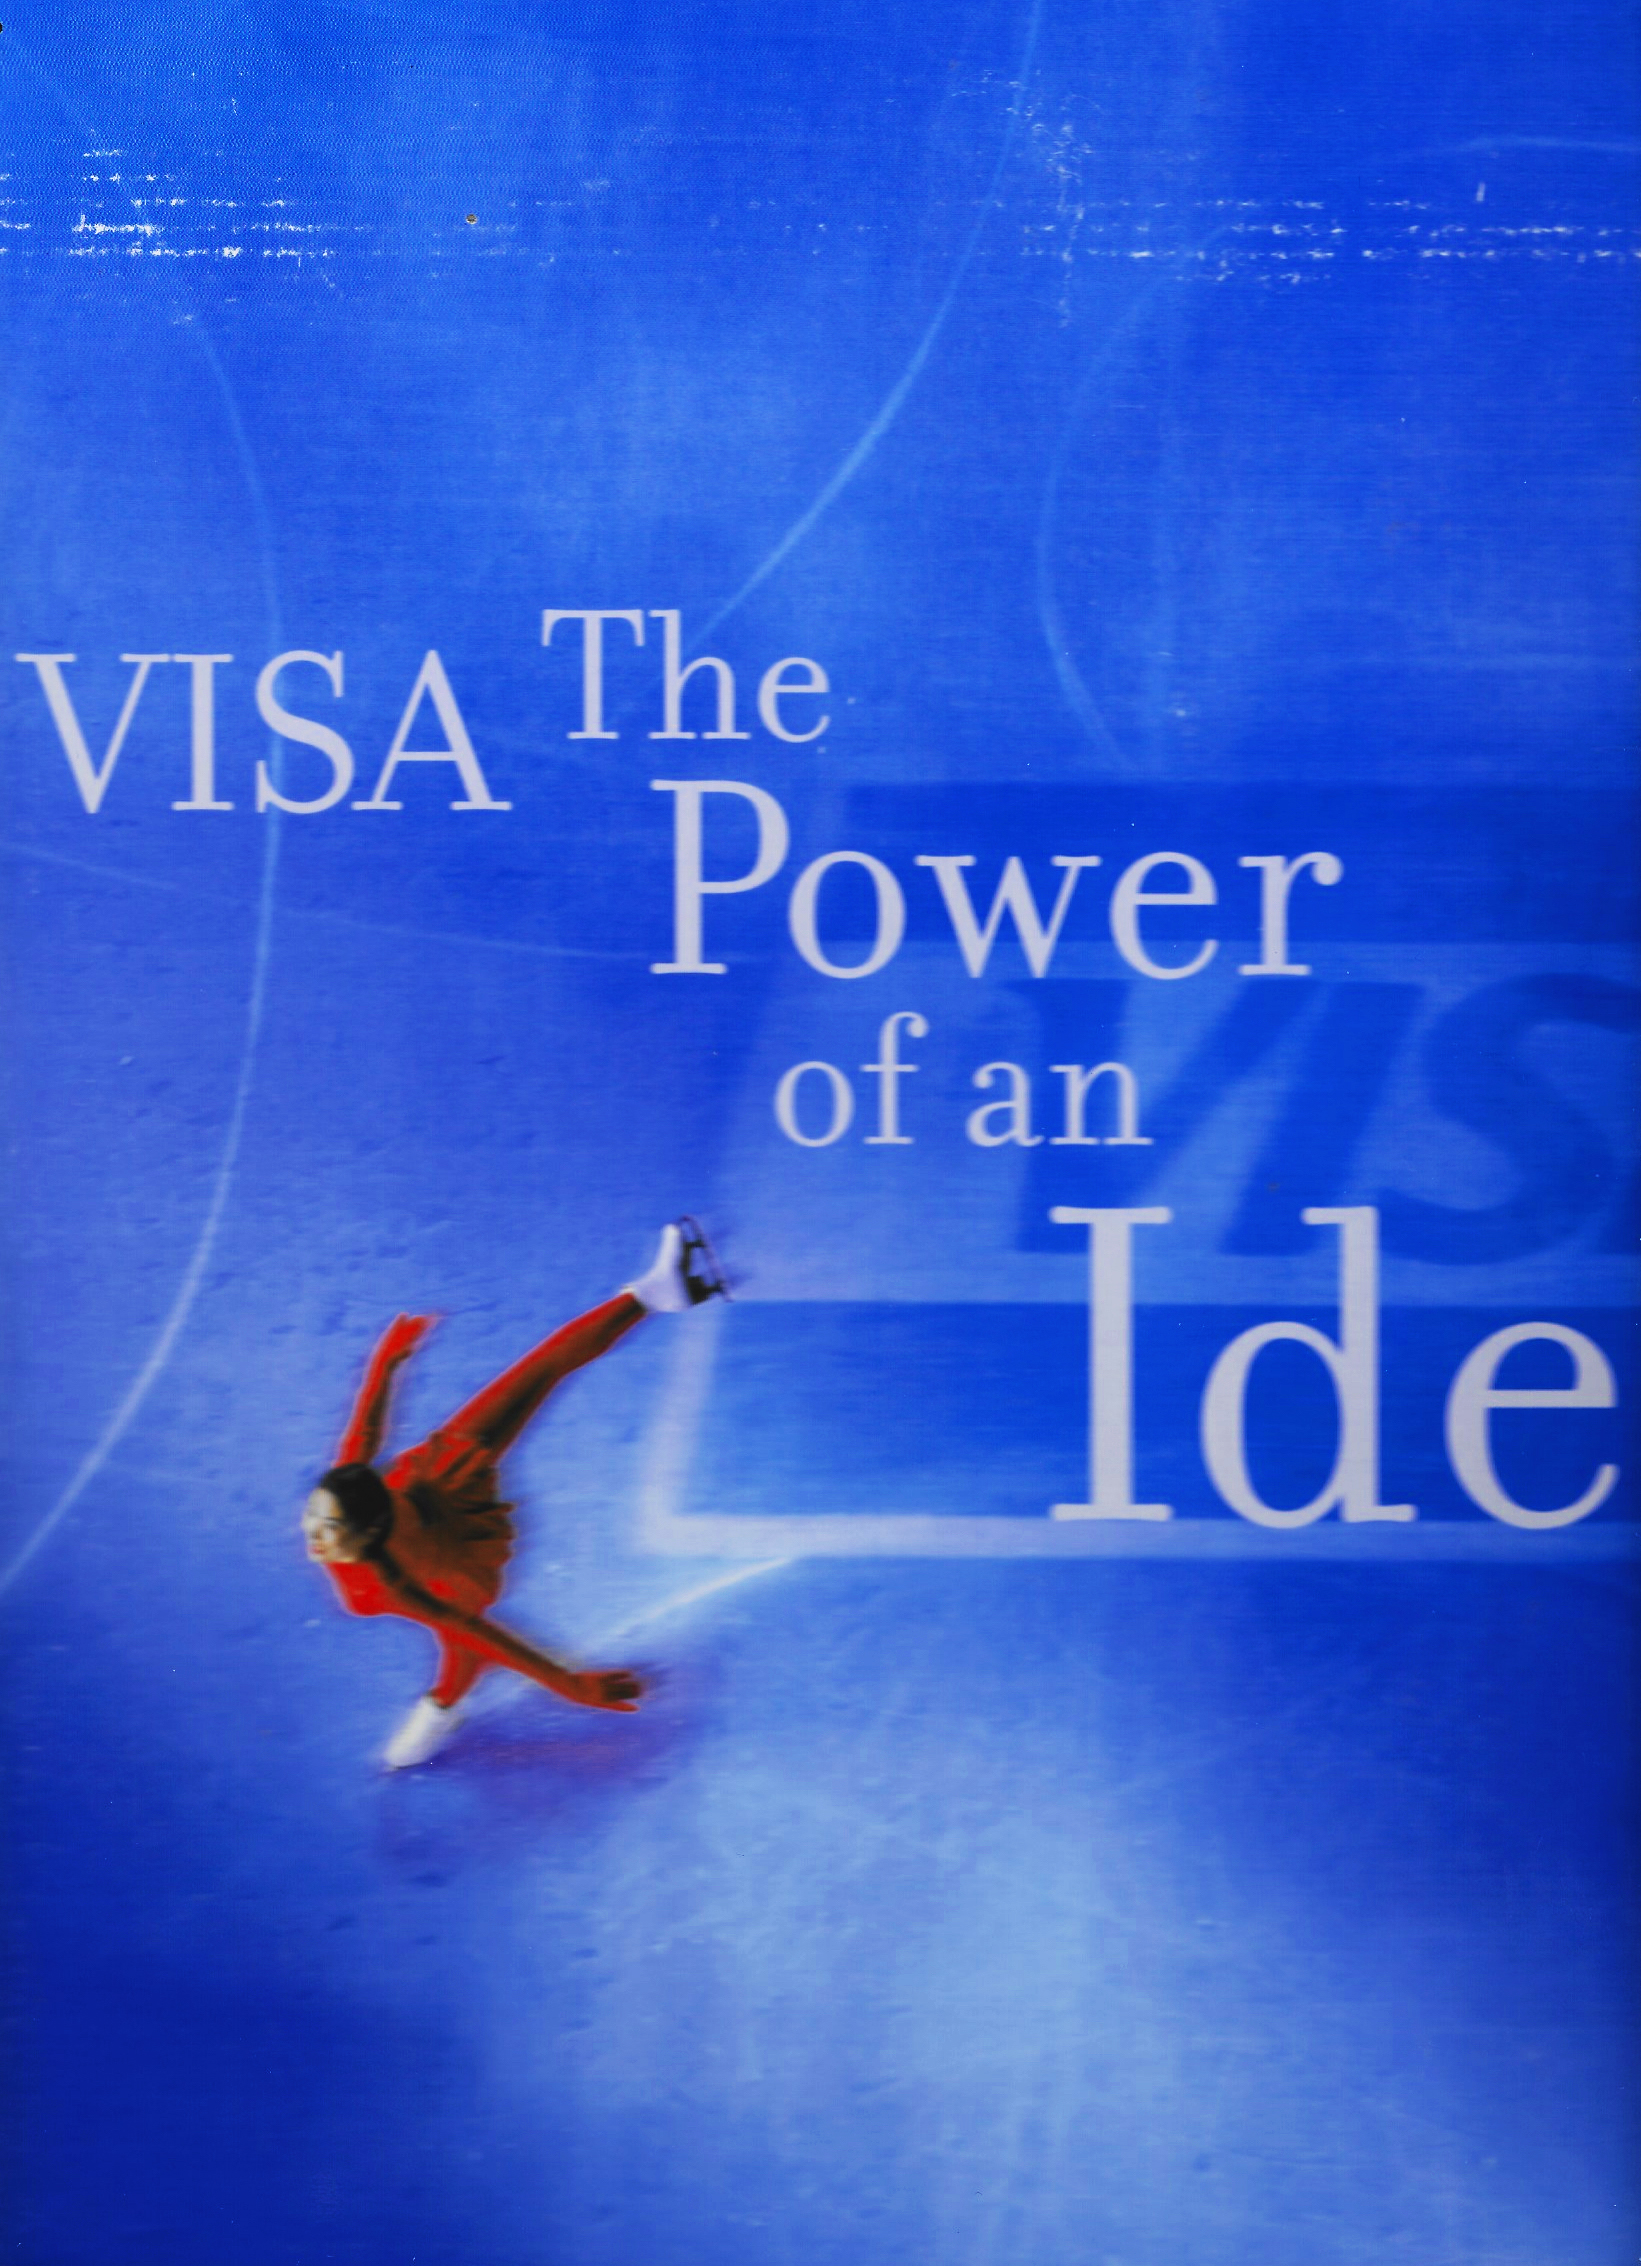 """""""'Visa, The Power of An Idea' is the finest book ever written about the credit card industry and for us it has been a fabulous corporate tool."""" - - Dave Brancoli, former Director of Corporate Communications, Visa International"""